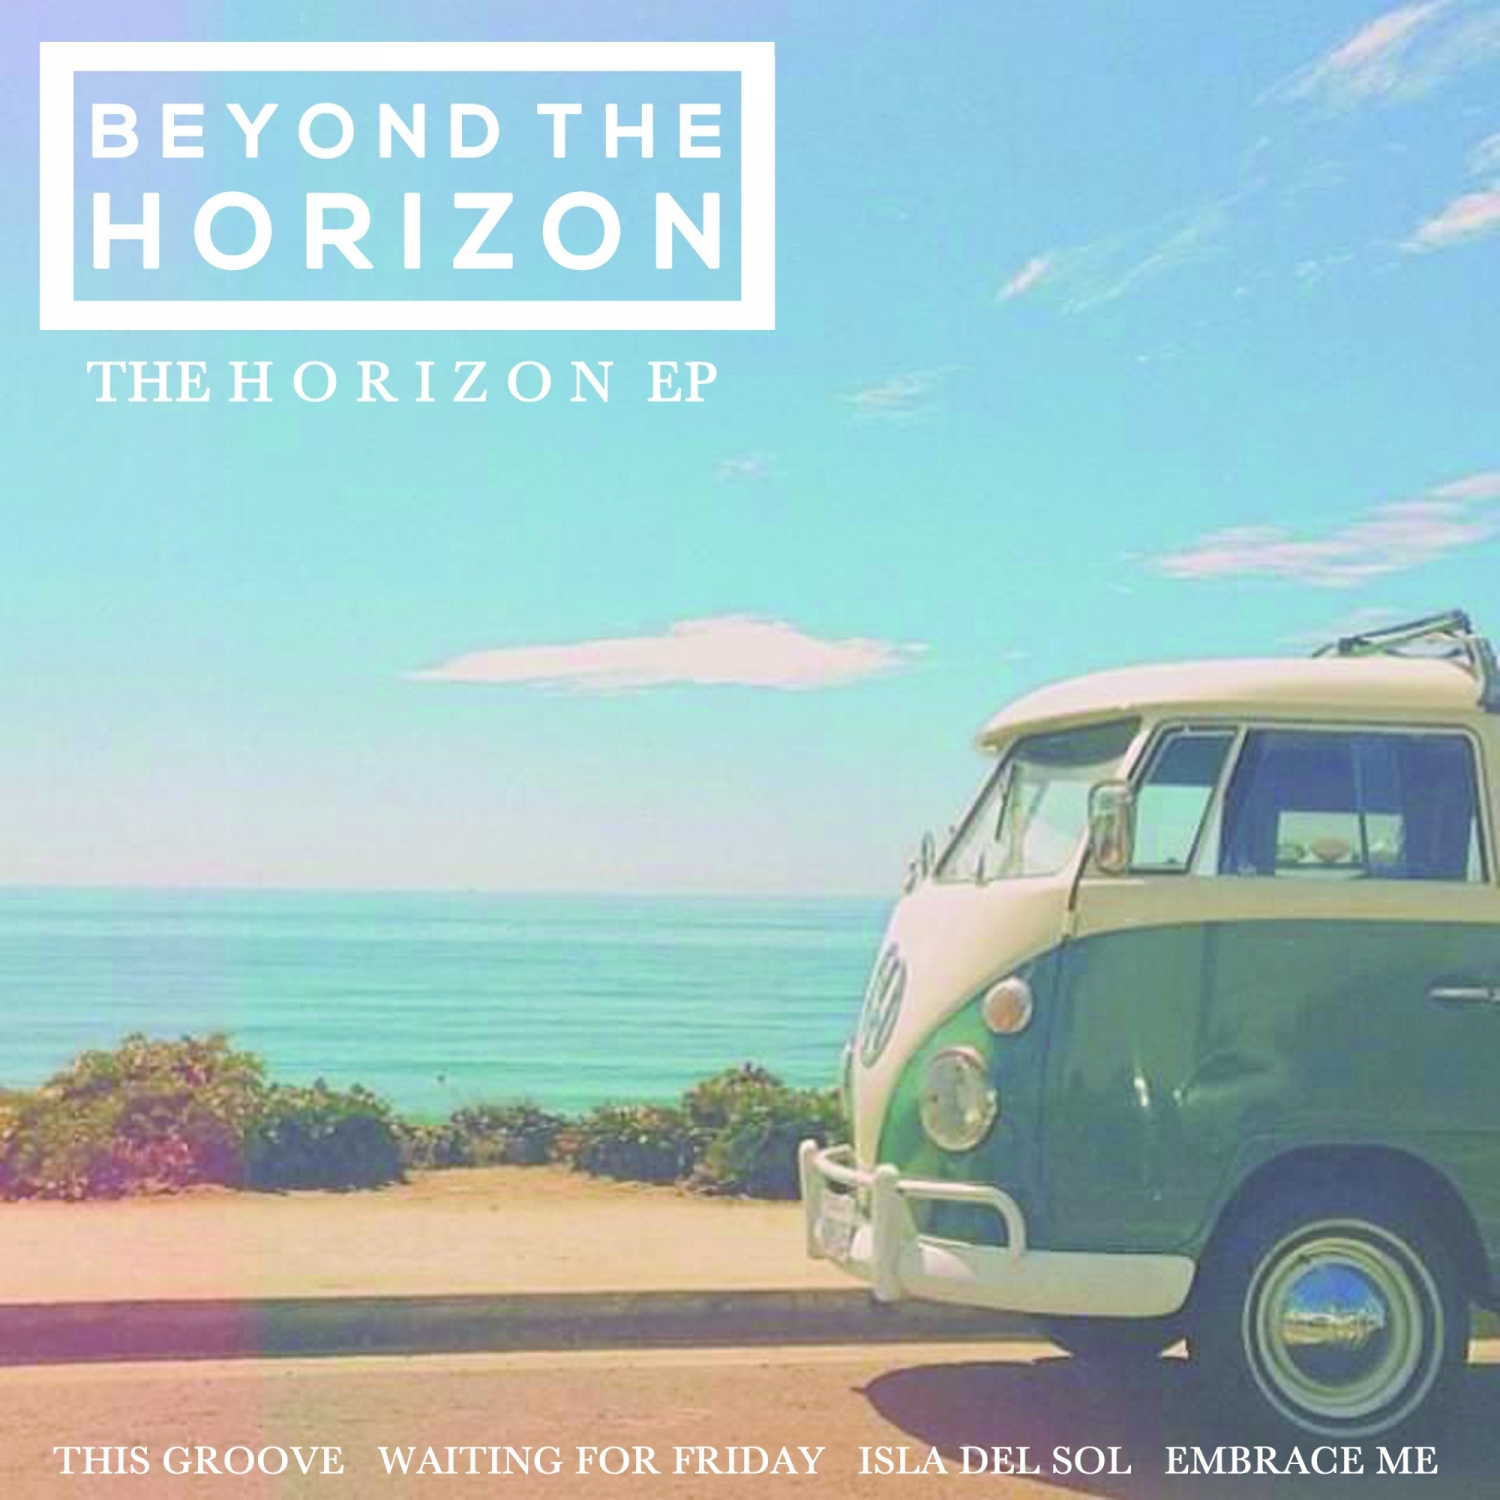 Beyond The Horizon - Embrace Me (Original Mix)